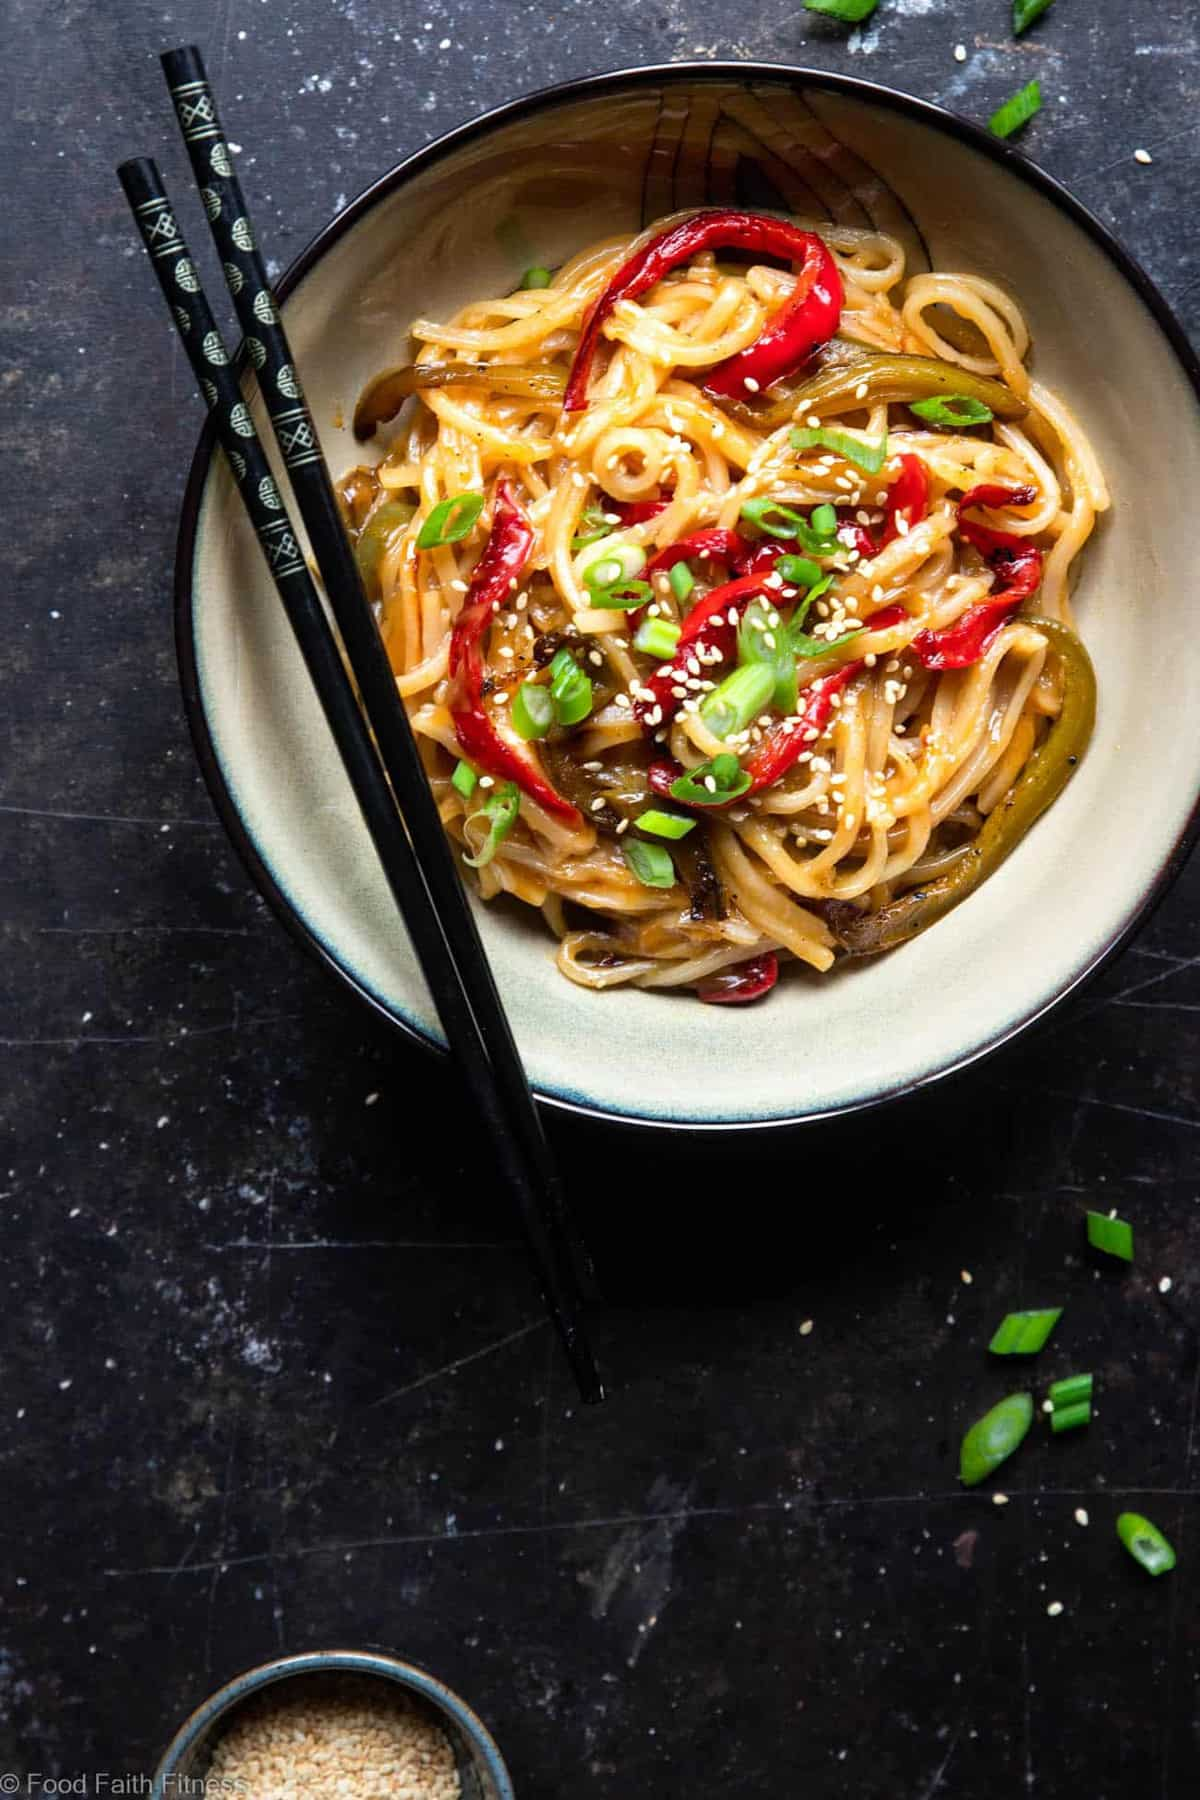 Honey Garlic Instant Pot Noodles - These Asian Instant Pot noodles are sticky, sweet and SO addicting! An EASY, gluten free dinner that even picky eaters will request! | #Foodfaithfitness | #glutenfree #InstantPot #healthy #dairyfree #vegetarian